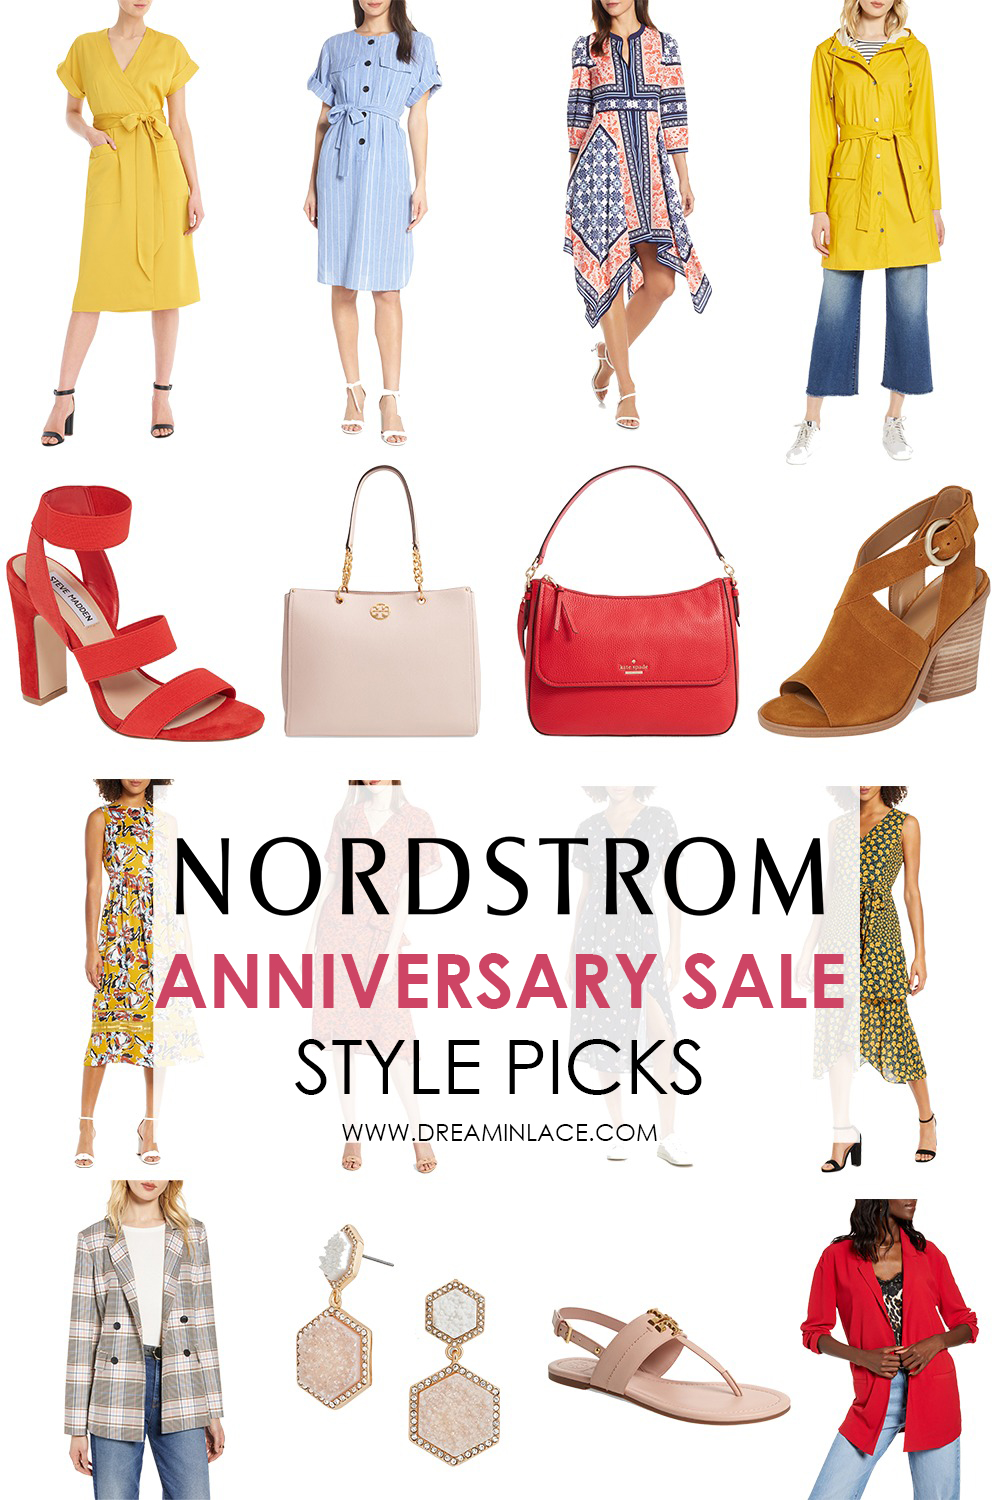 The Best Nordstrom Anniversary Sale Style Finds I DreaminLace.com #Nordstrom #Shopping #StyleTips #FashionBlogger